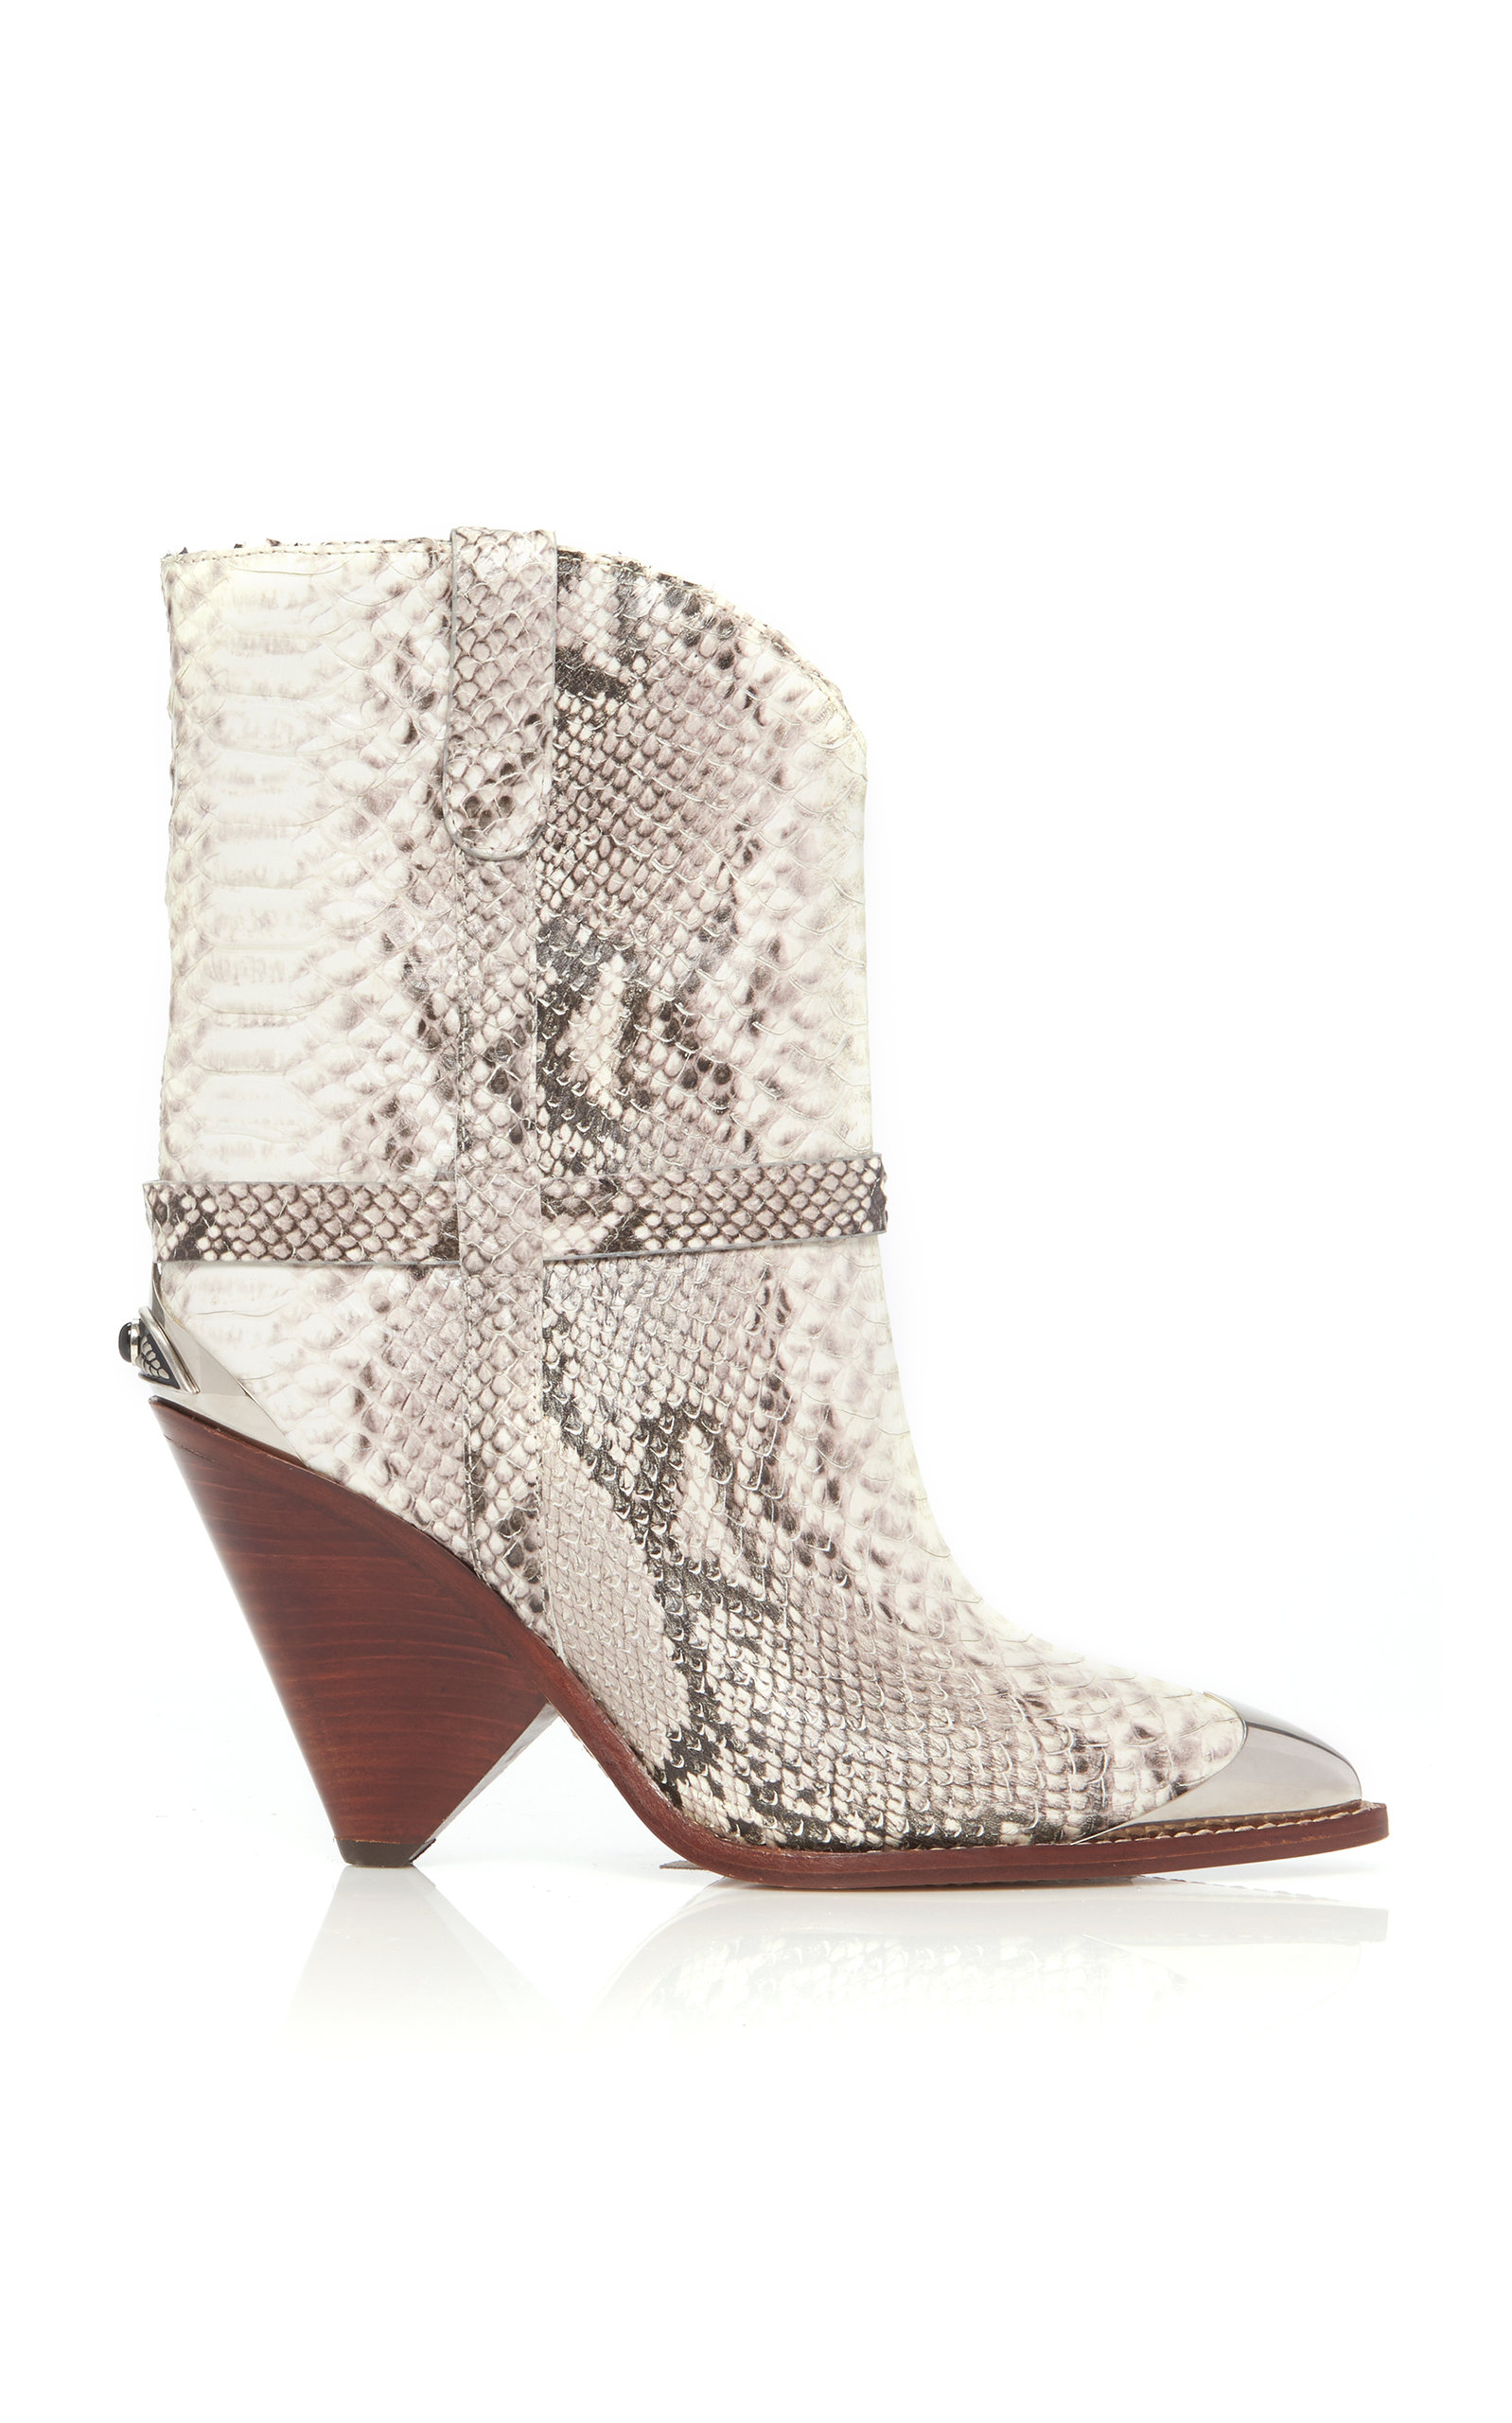 Lamsy Embellished Snake-Effect Leather Ankle Boots in Snake Print from Moda Operandi